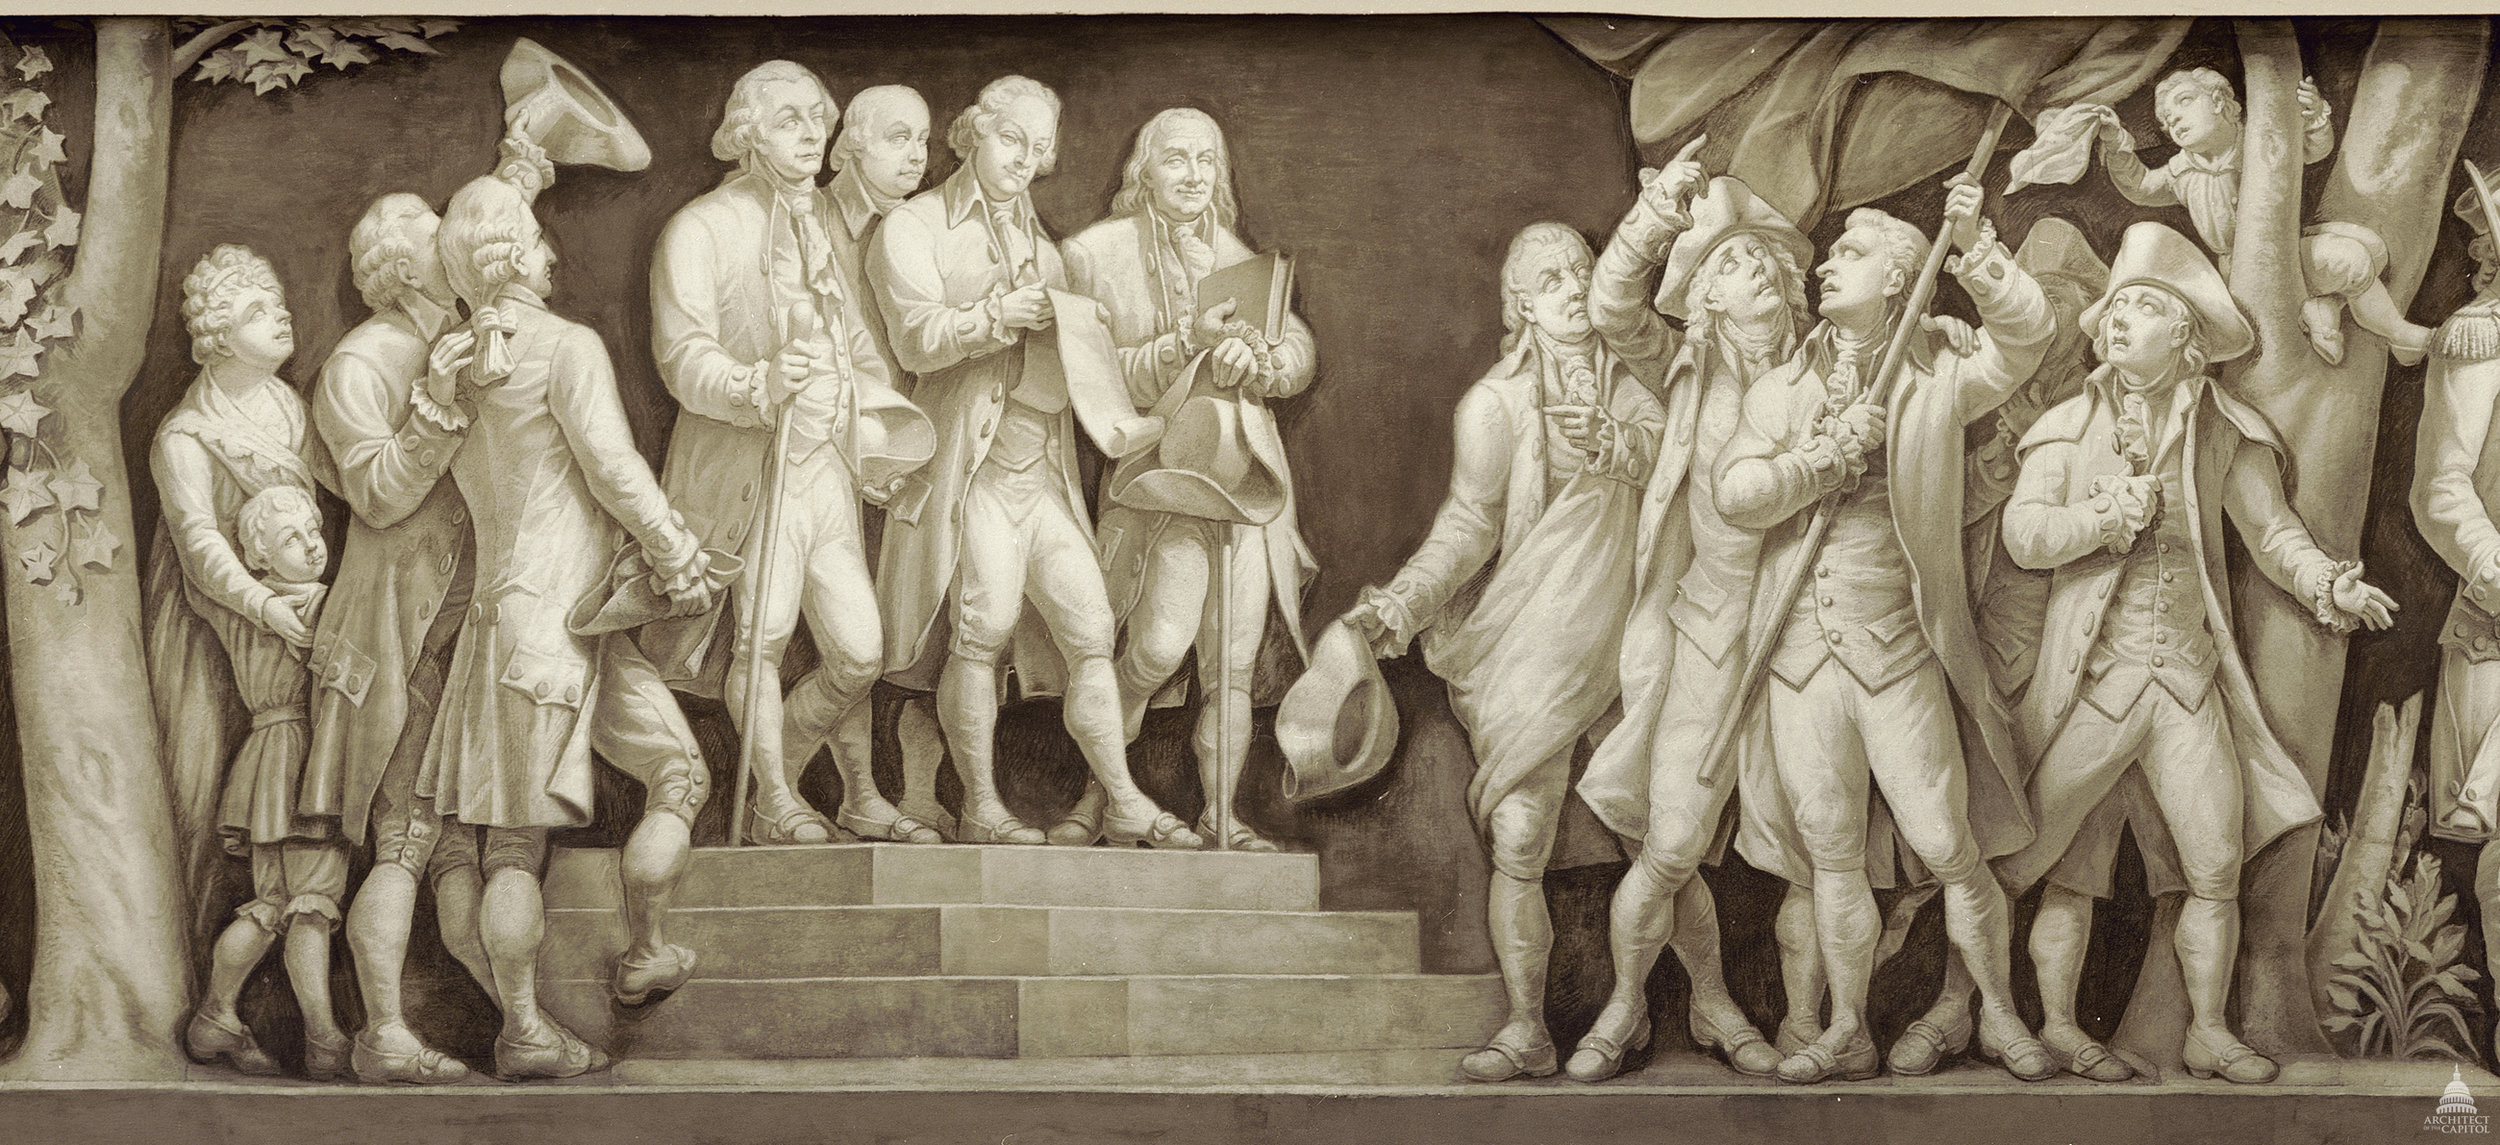 This idealized depiction shows the principal authors of the Declaration of Independence, John Adams, Thomas Jefferson and Benjamin Franklin, reading the document to colonists in 1776. From the frieze of American history in the Rotunda of the U.S. Capitol. Photo by Architect of the Capitol.